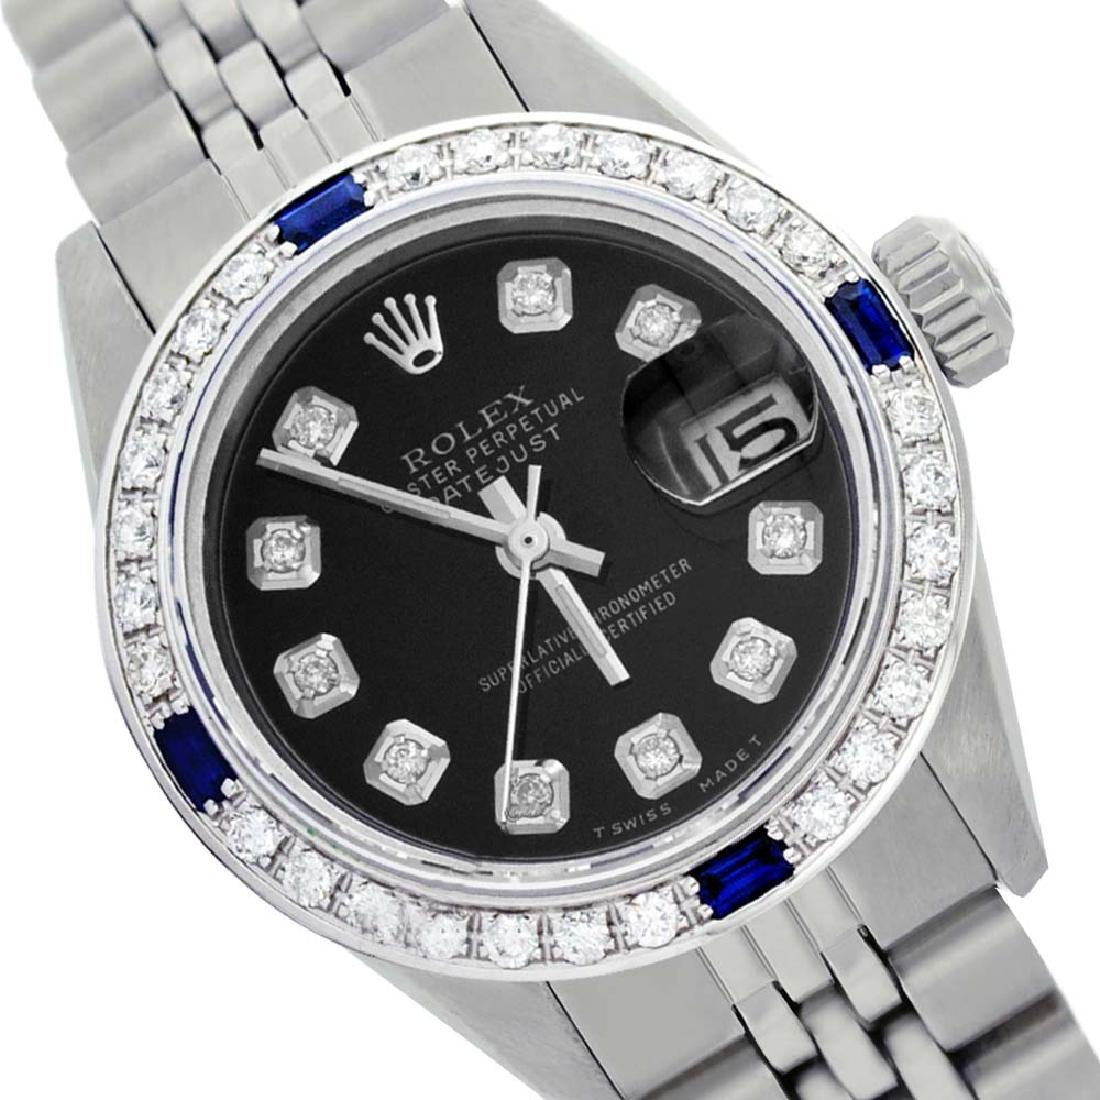 Rolex Men's Stainless Steel, QuickSet, Diam Dial &